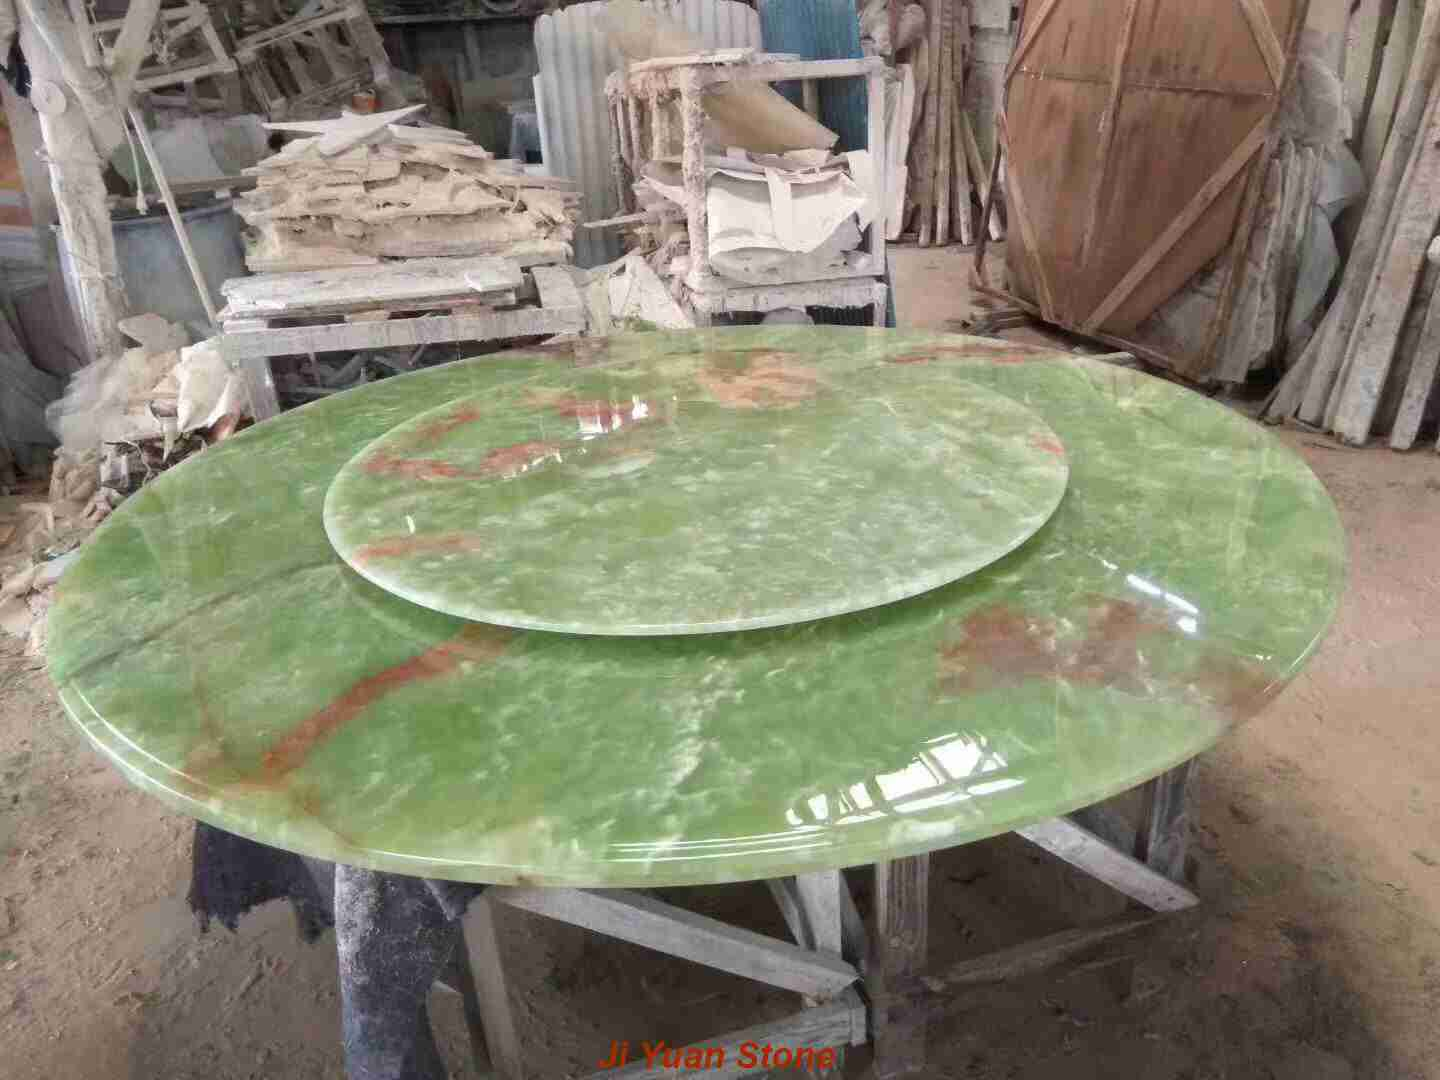 Marble Dining Table Prices Marble Table Tops Made To Order Grey Marble Dining Table And Chairs Black Marble Top Dining Table Marble Dining Table And Chairs Sale